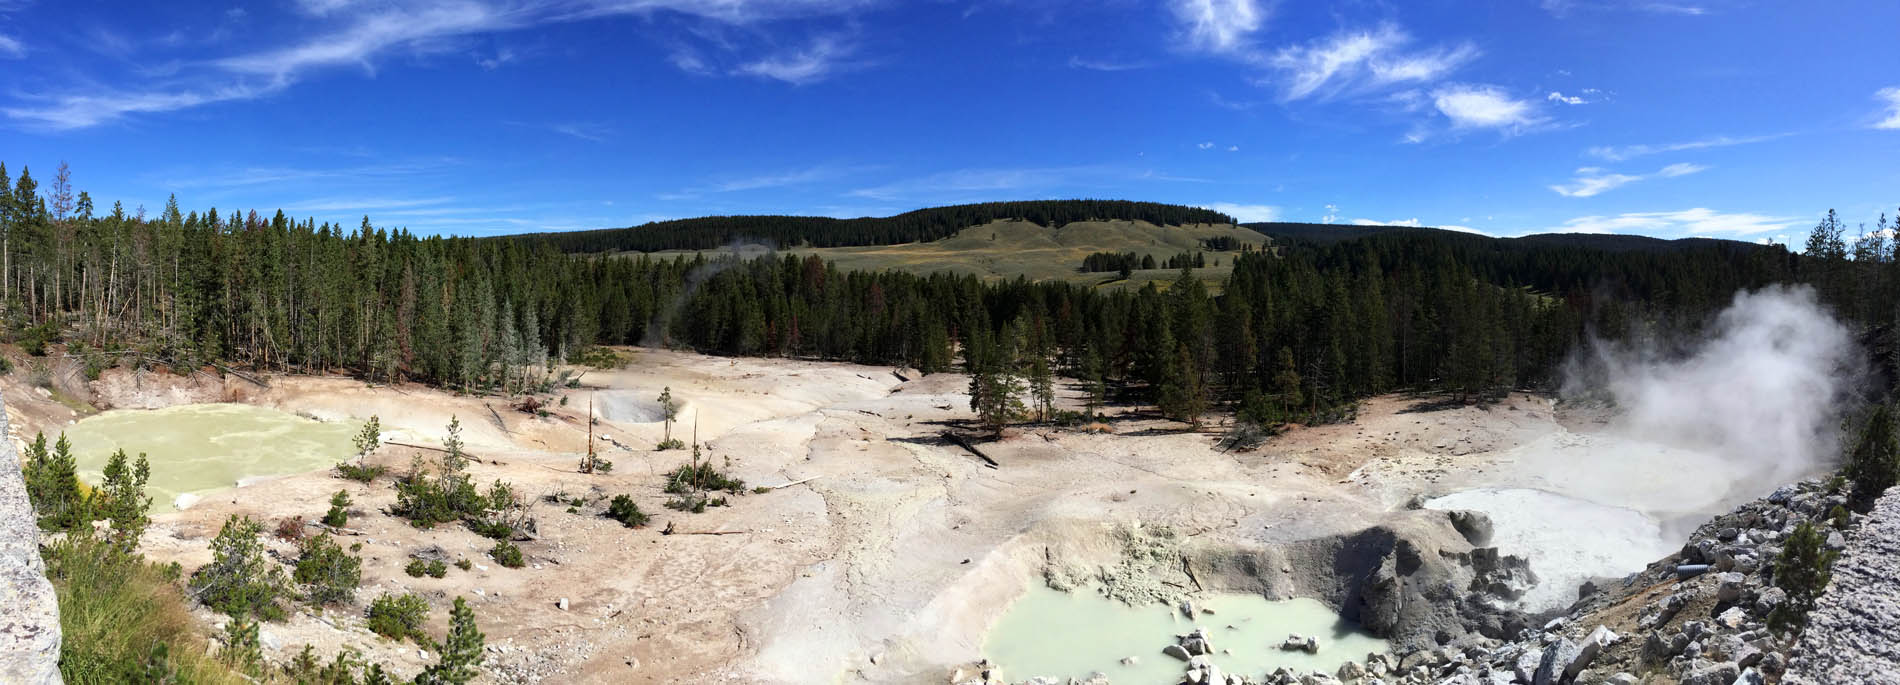 Sulphur Cauldron Panorama